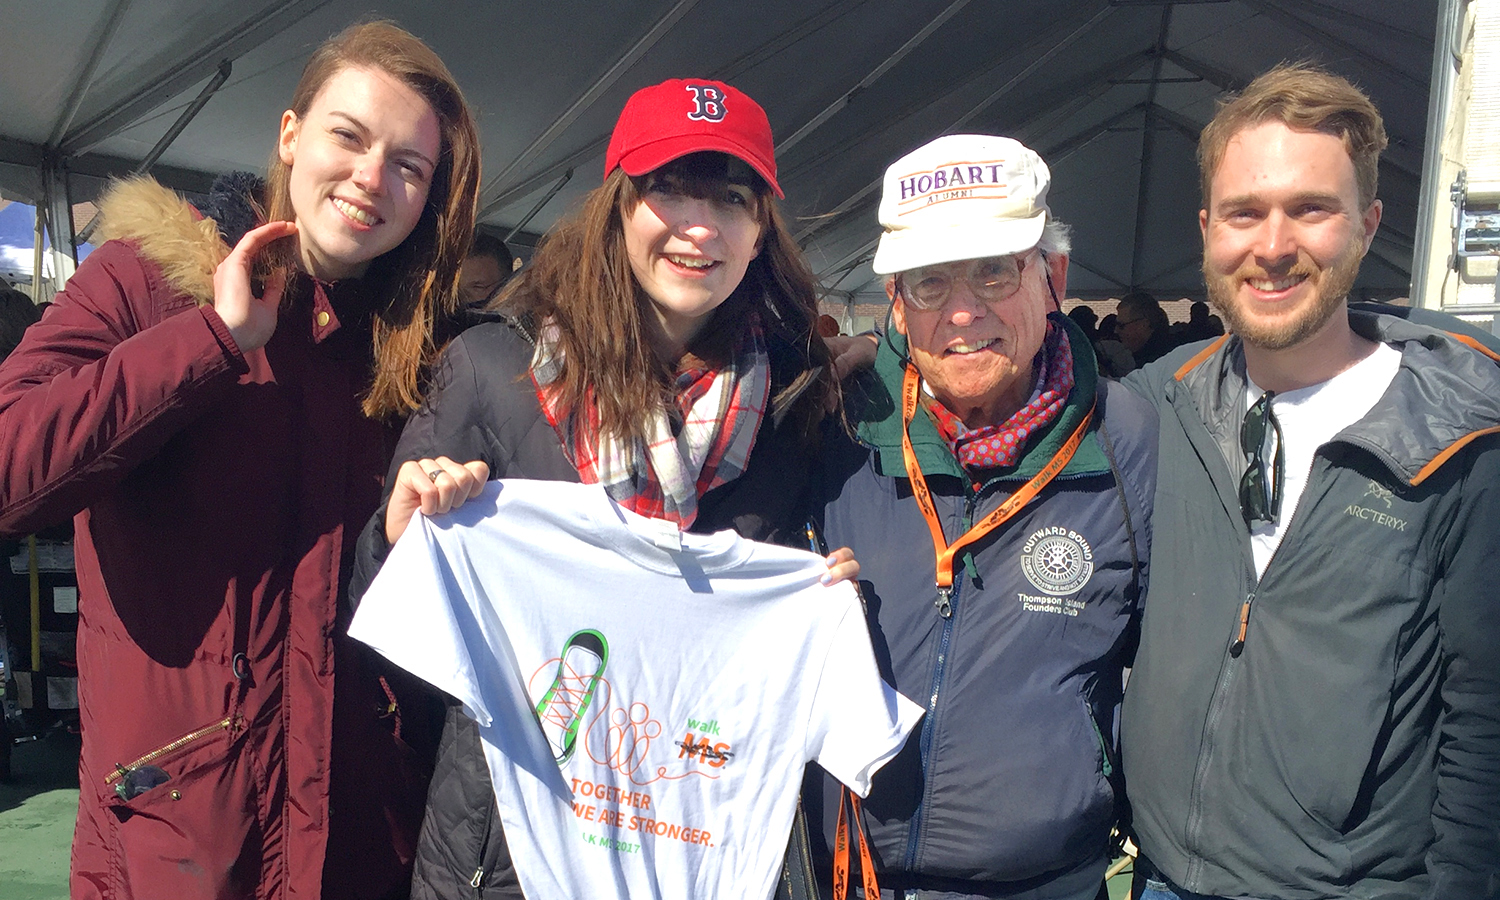 Michelle Poulin '15, Molly Doris-Pierce '15, Lt. Eric Hall Anderson '59 and Nick Snow '15 team-up at Walk MS in Boston on April 2.